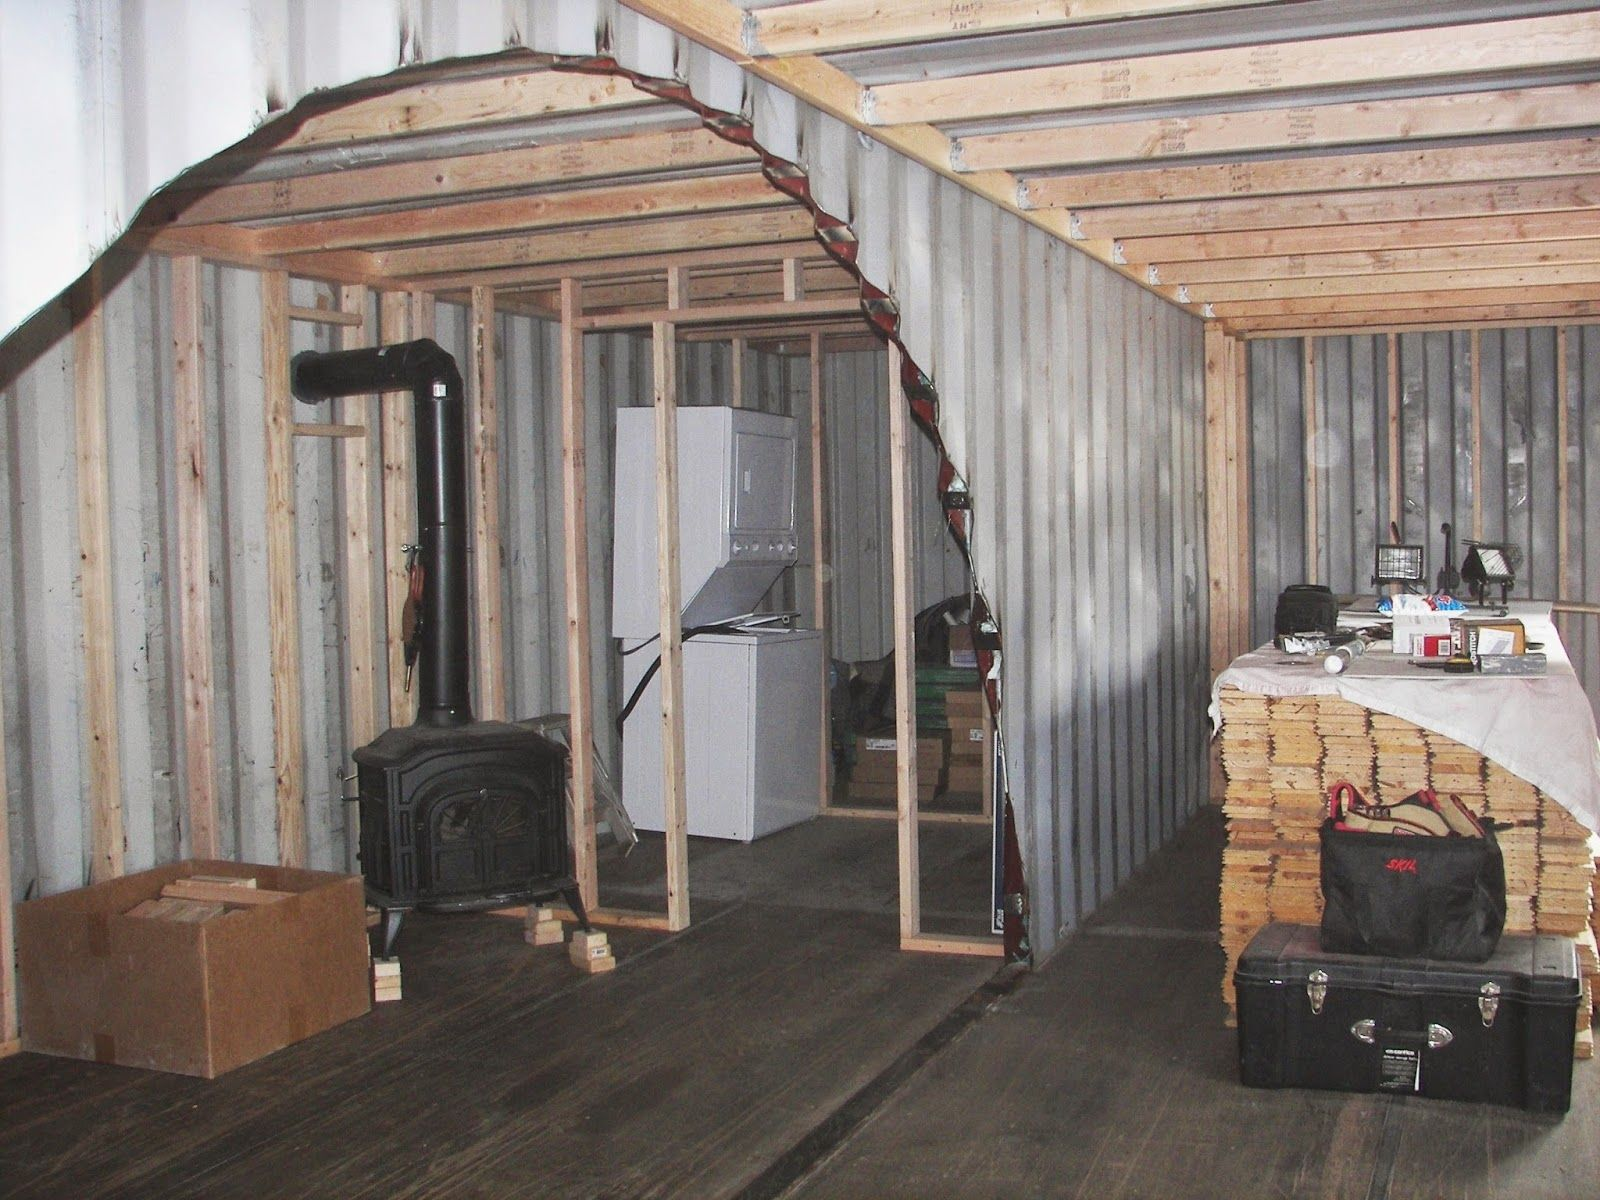 Sea shipping container cabin shelter home framing and insulation containers pinterest - Insulating shipping container homes ...